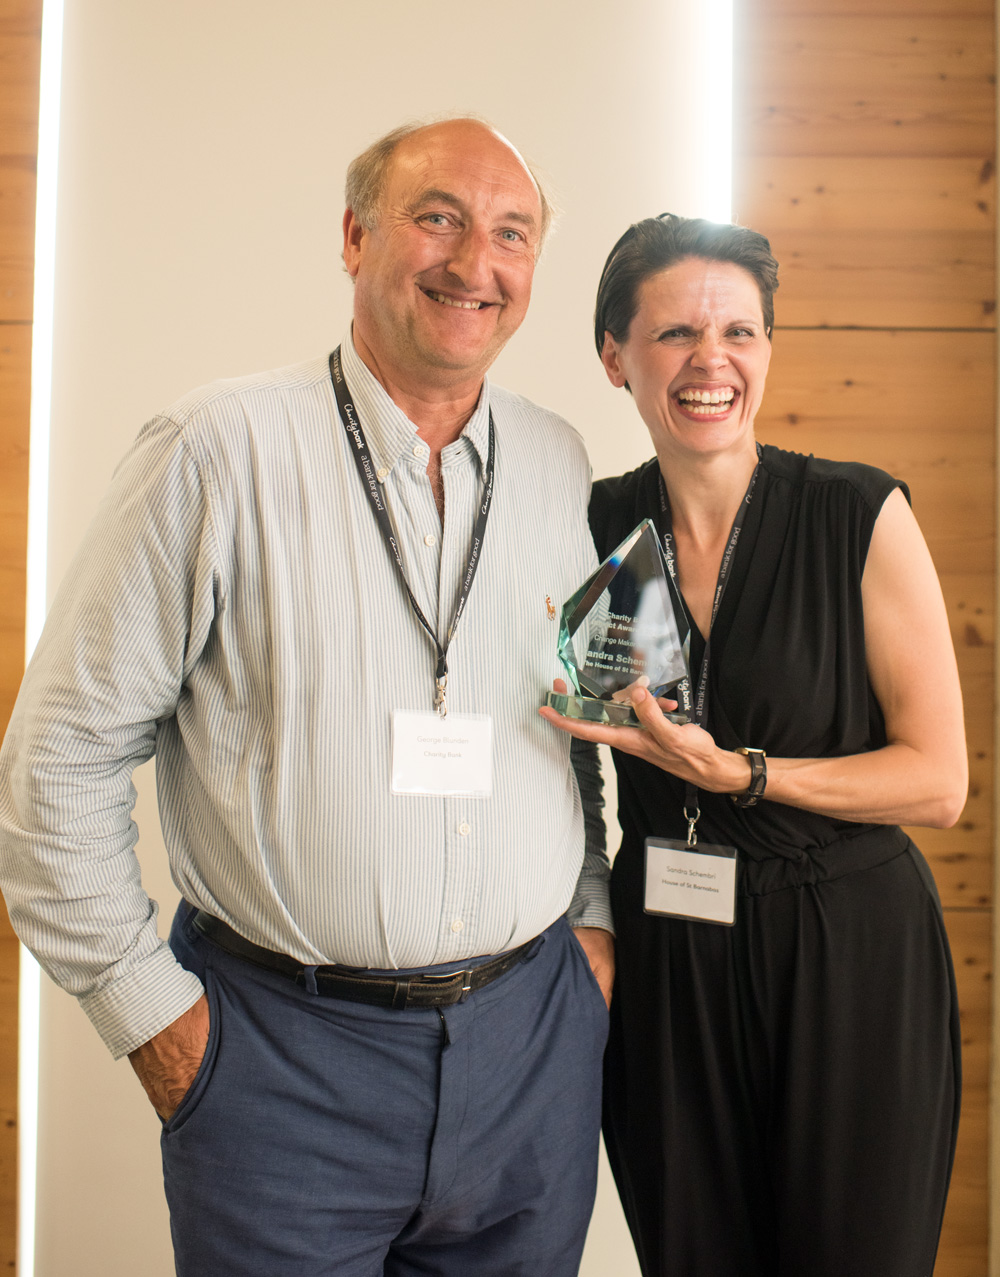 George Blunden, Chairman of Charity Bank is pictured with Sandra as she accepted her award.